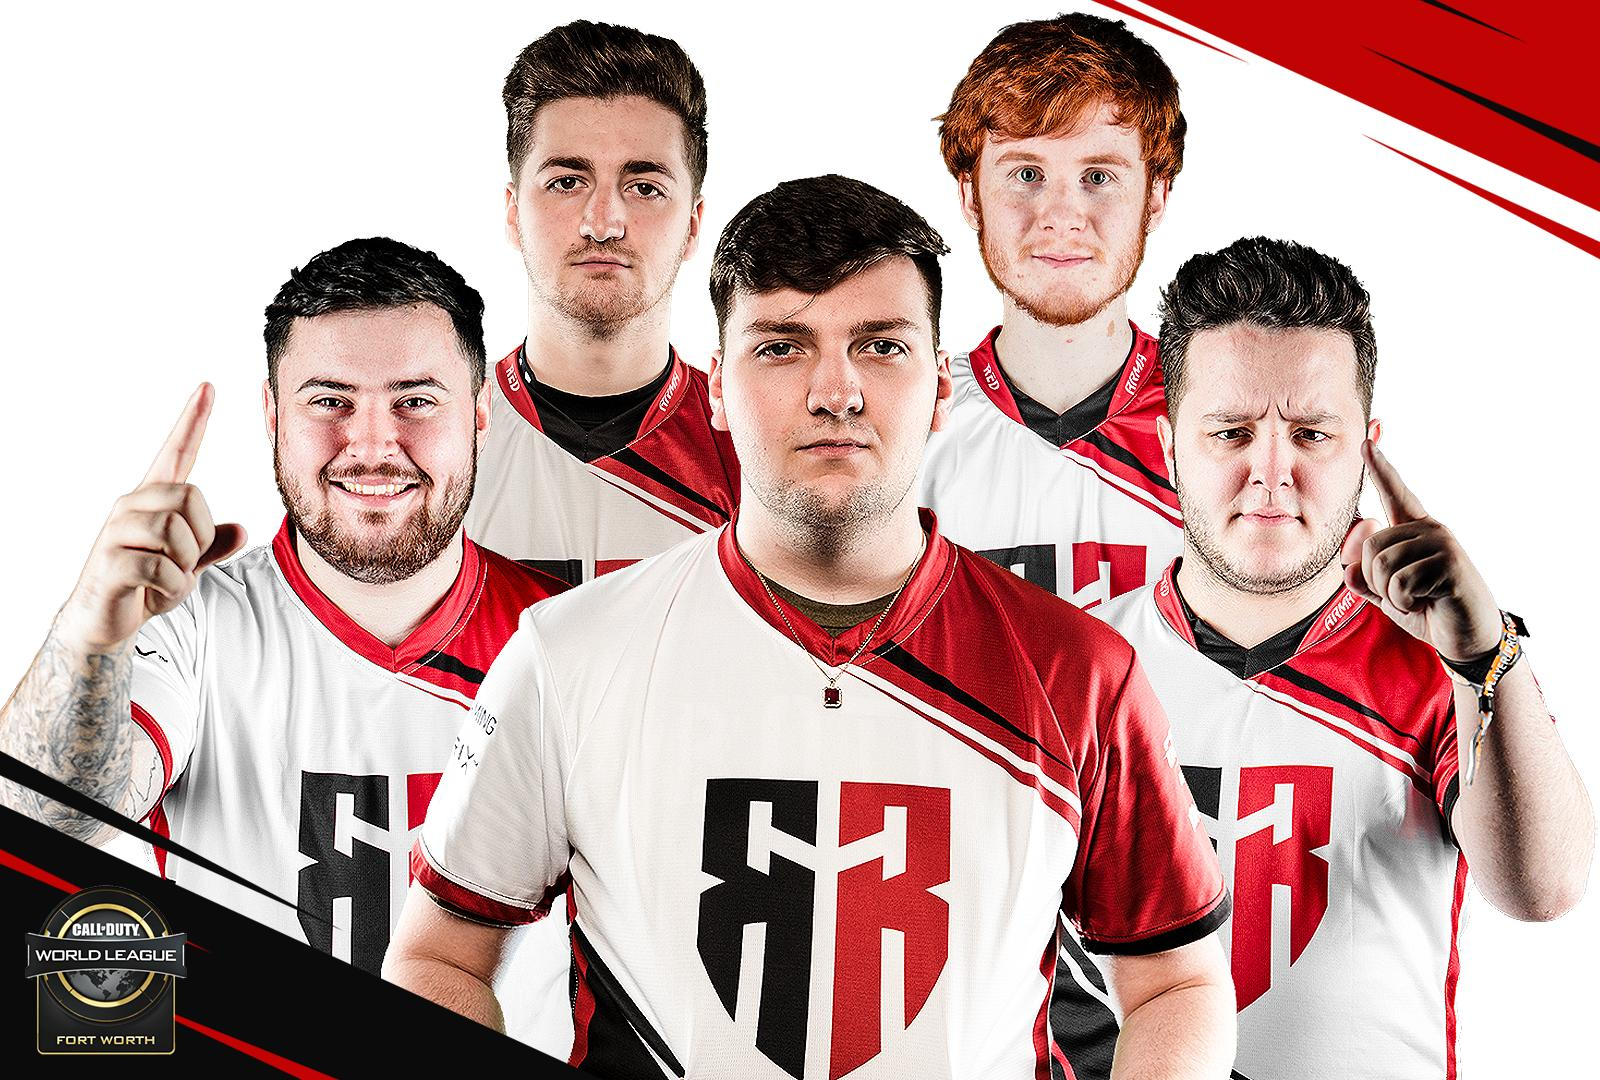 Red Reserve evicted from team house amid financial struggles image